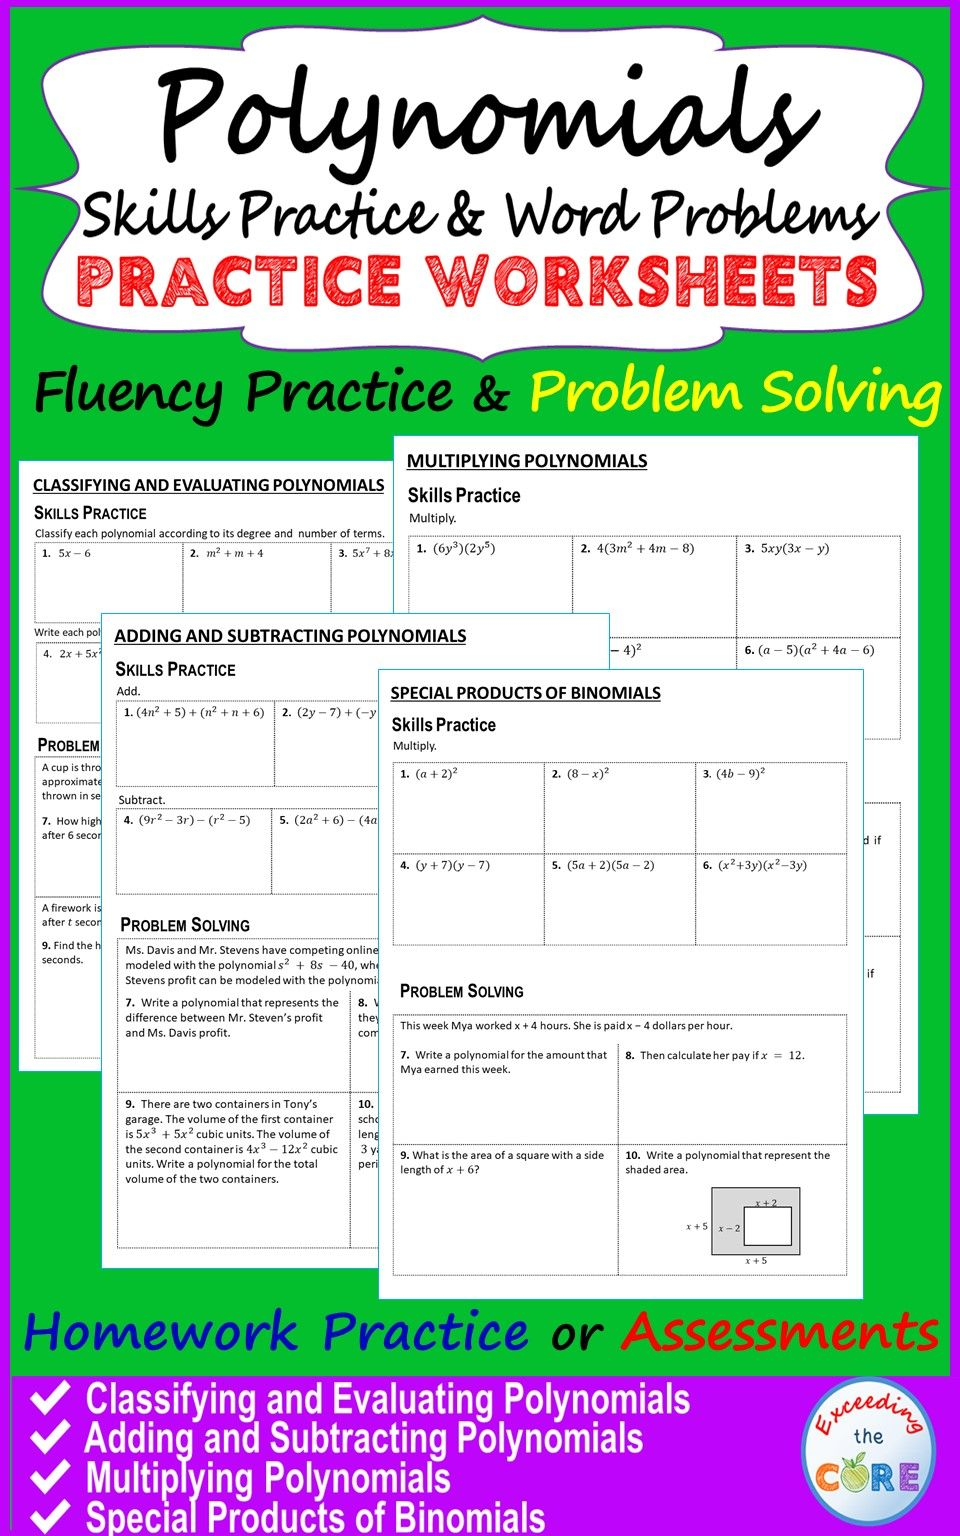 Worksheets Polynomial Practice Worksheet polynomials homework worksheets skills practice word problems this resource includes 4 polynomial 40 questions each worksheet two